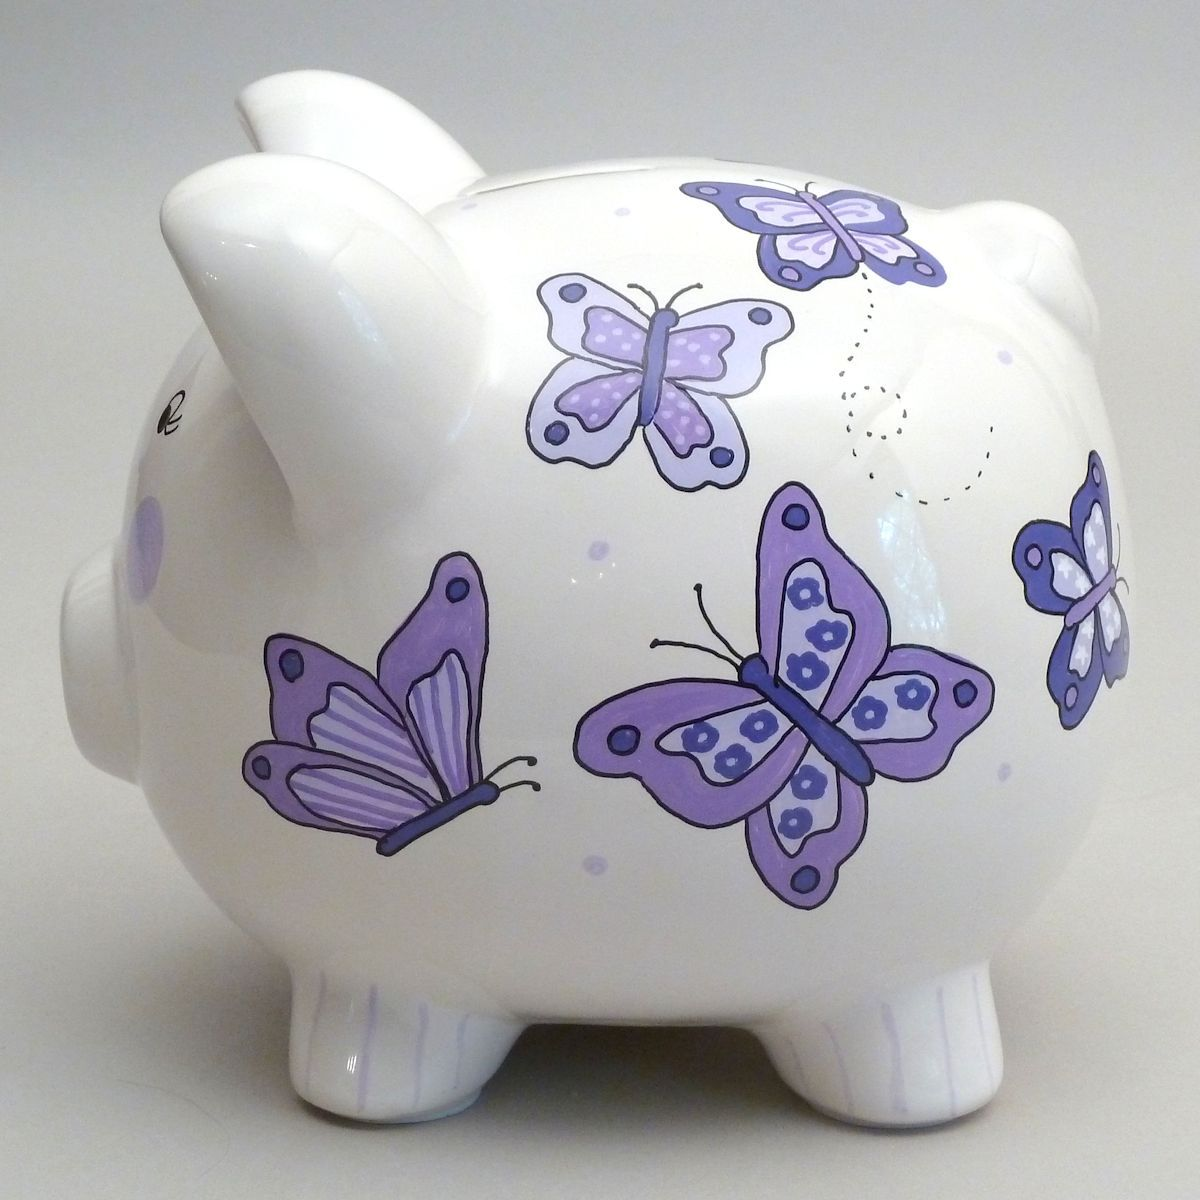 Your gift recipient will be all aflutter when they open for How to paint a ceramic piggy bank